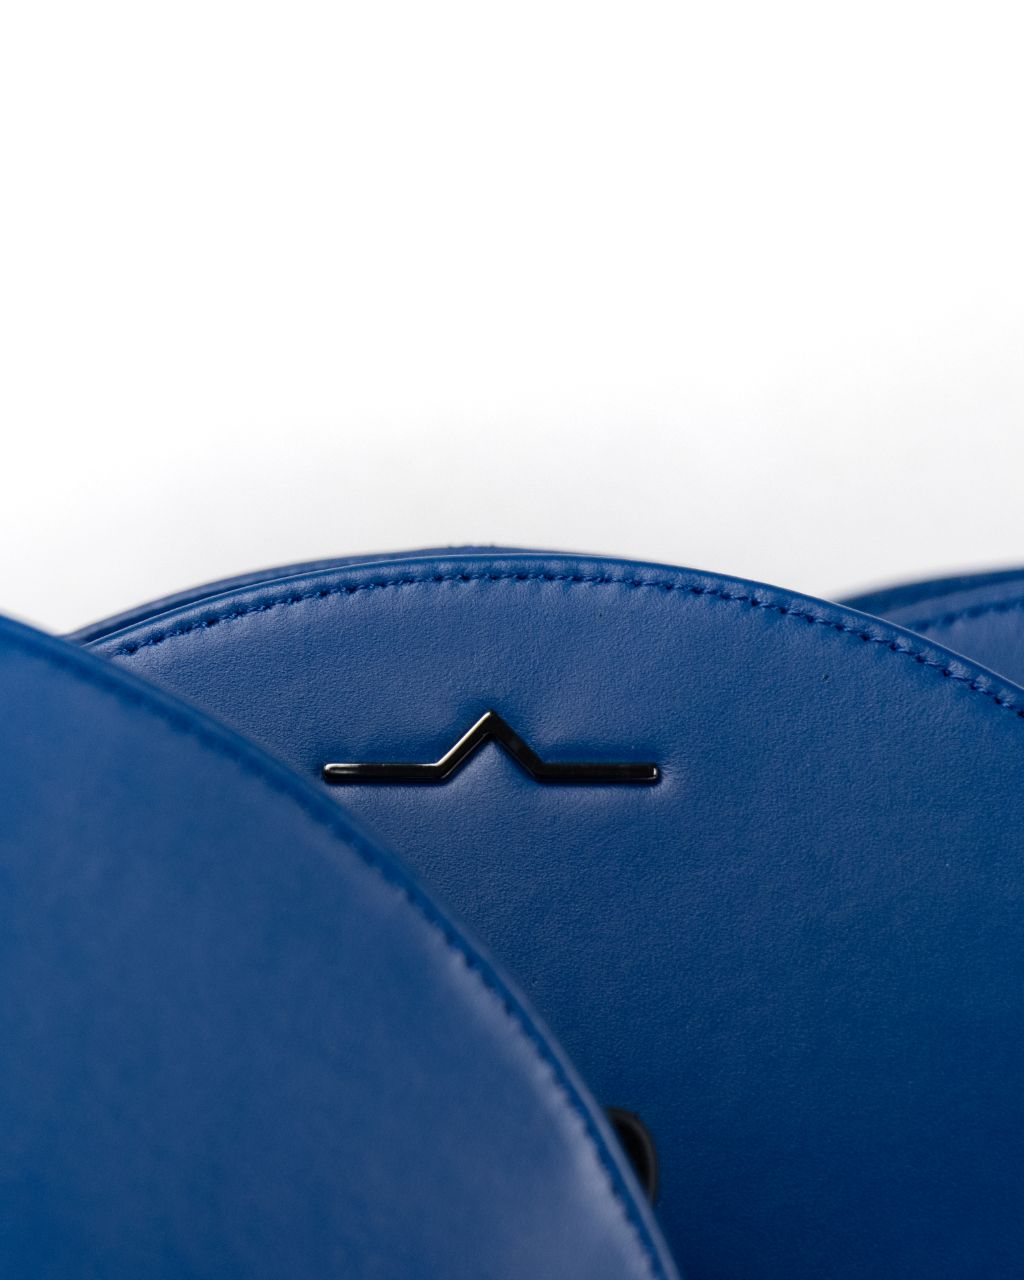 Lapis Blue Circle Shoulder Bag in Calf Skin – Limited Edition